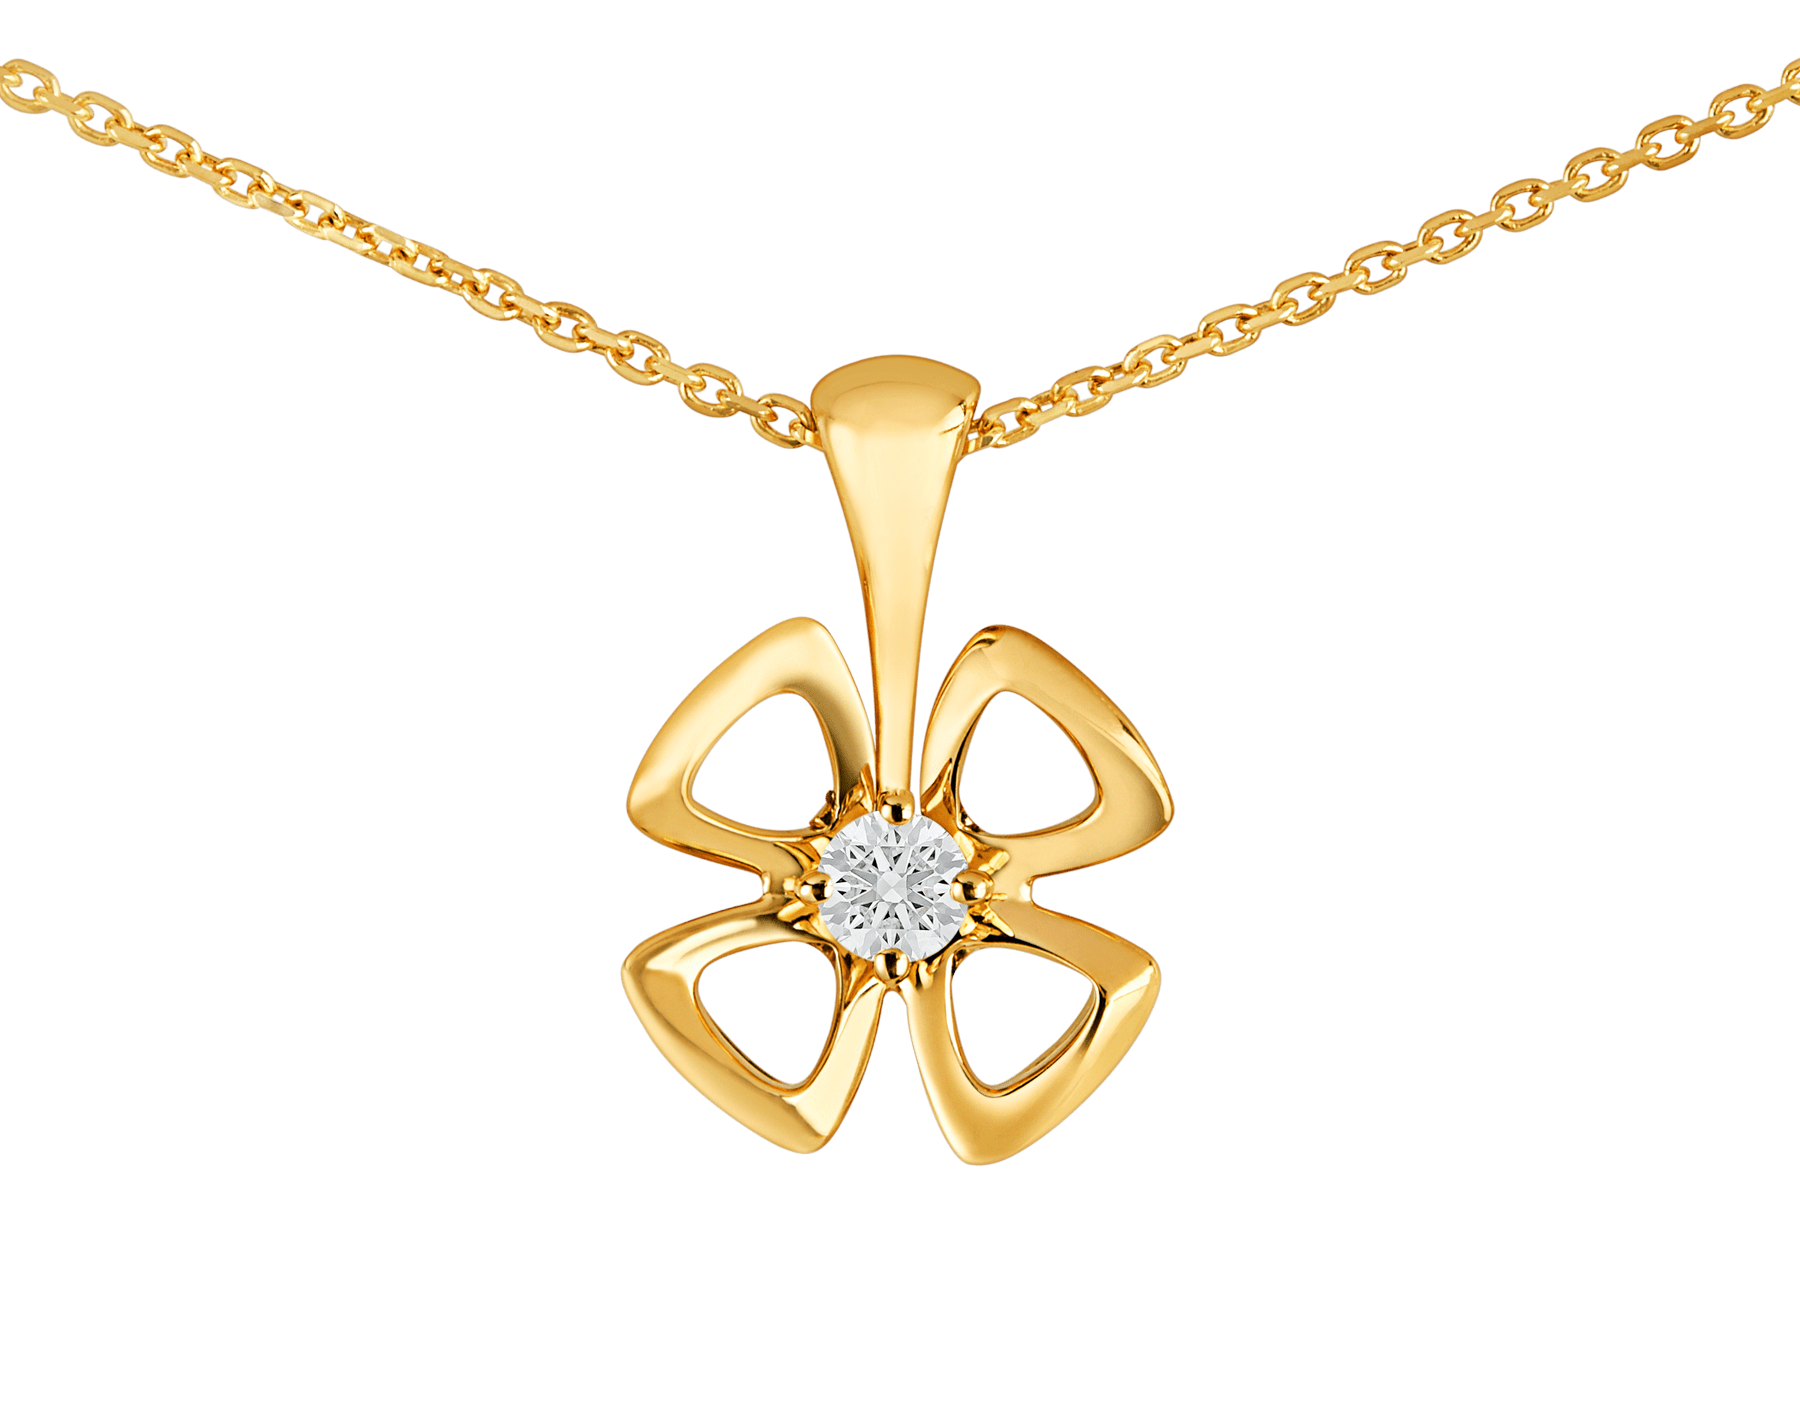 Fiorever 18 kt yellow gold necklace set with a central diamond. 357501 image 3